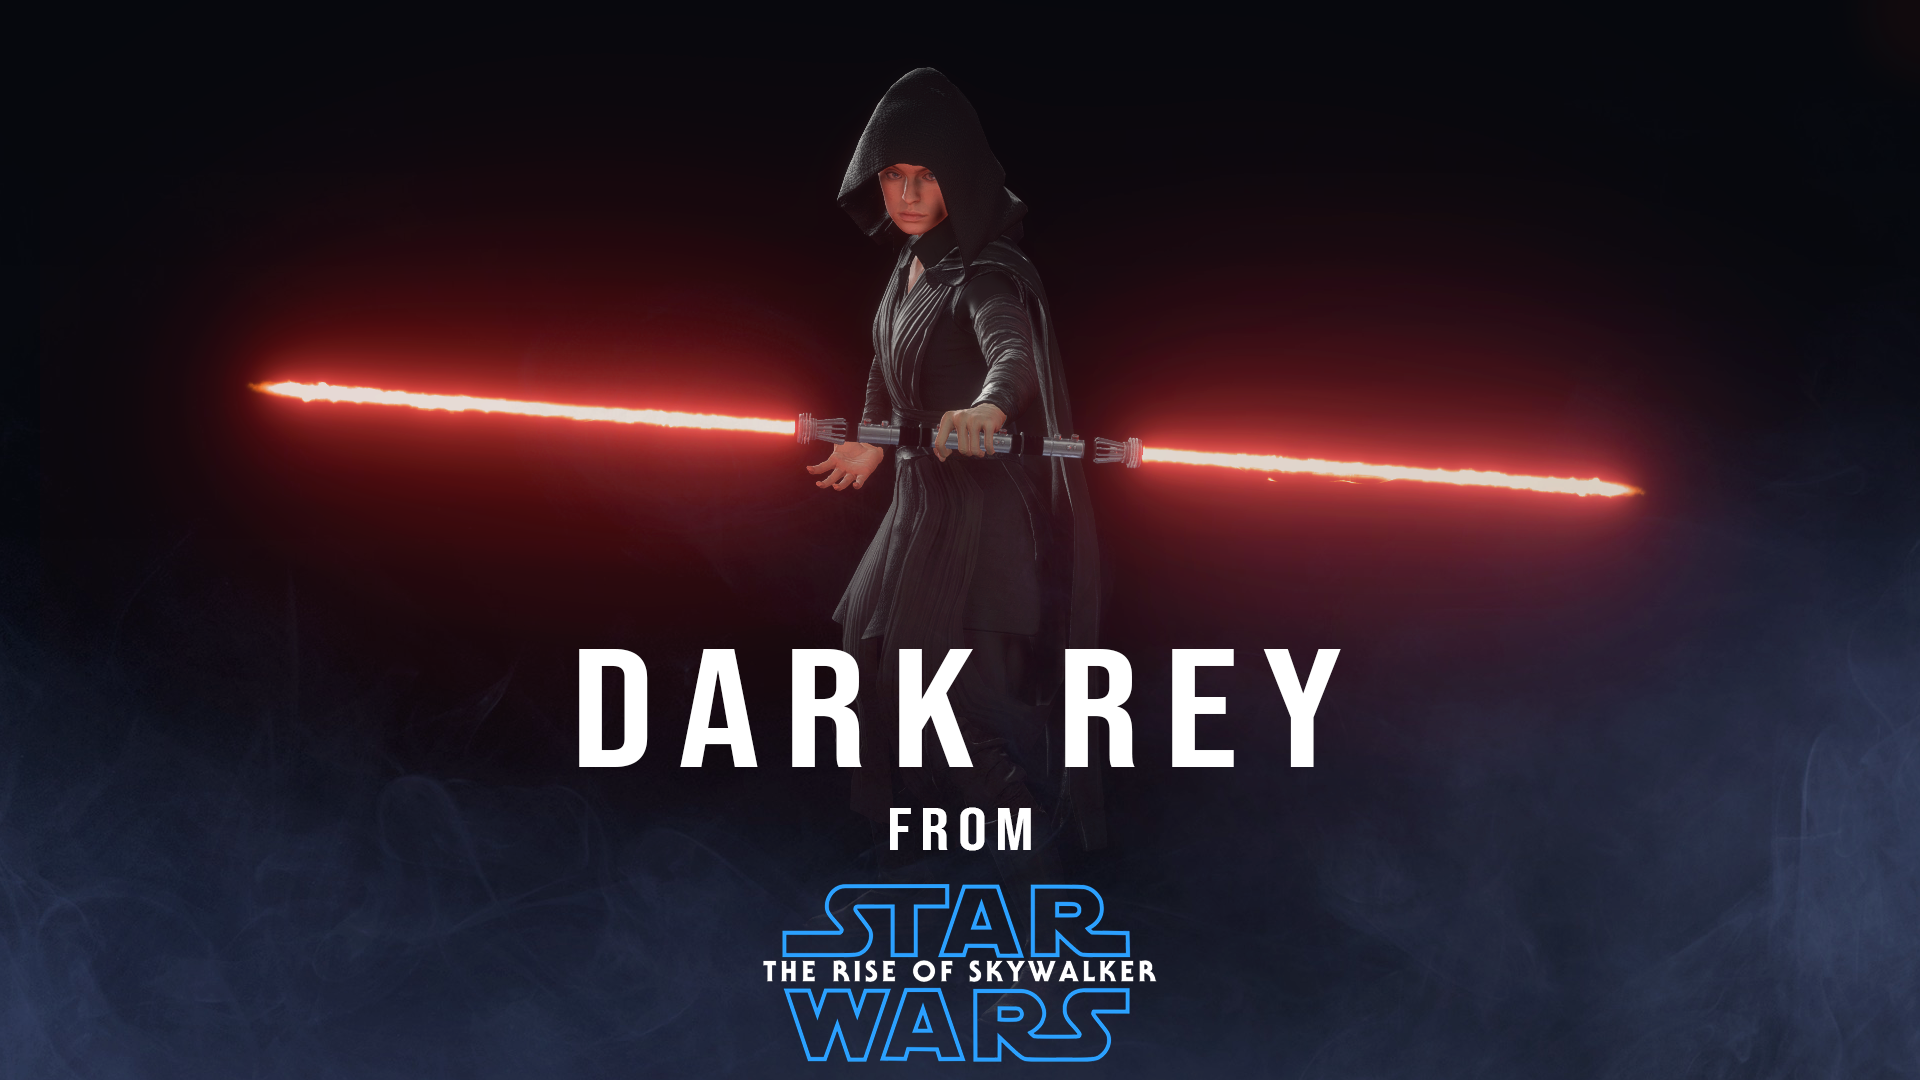 SiRMEs Dark Rey at Star Wars Battlefront II 2017 Nexus